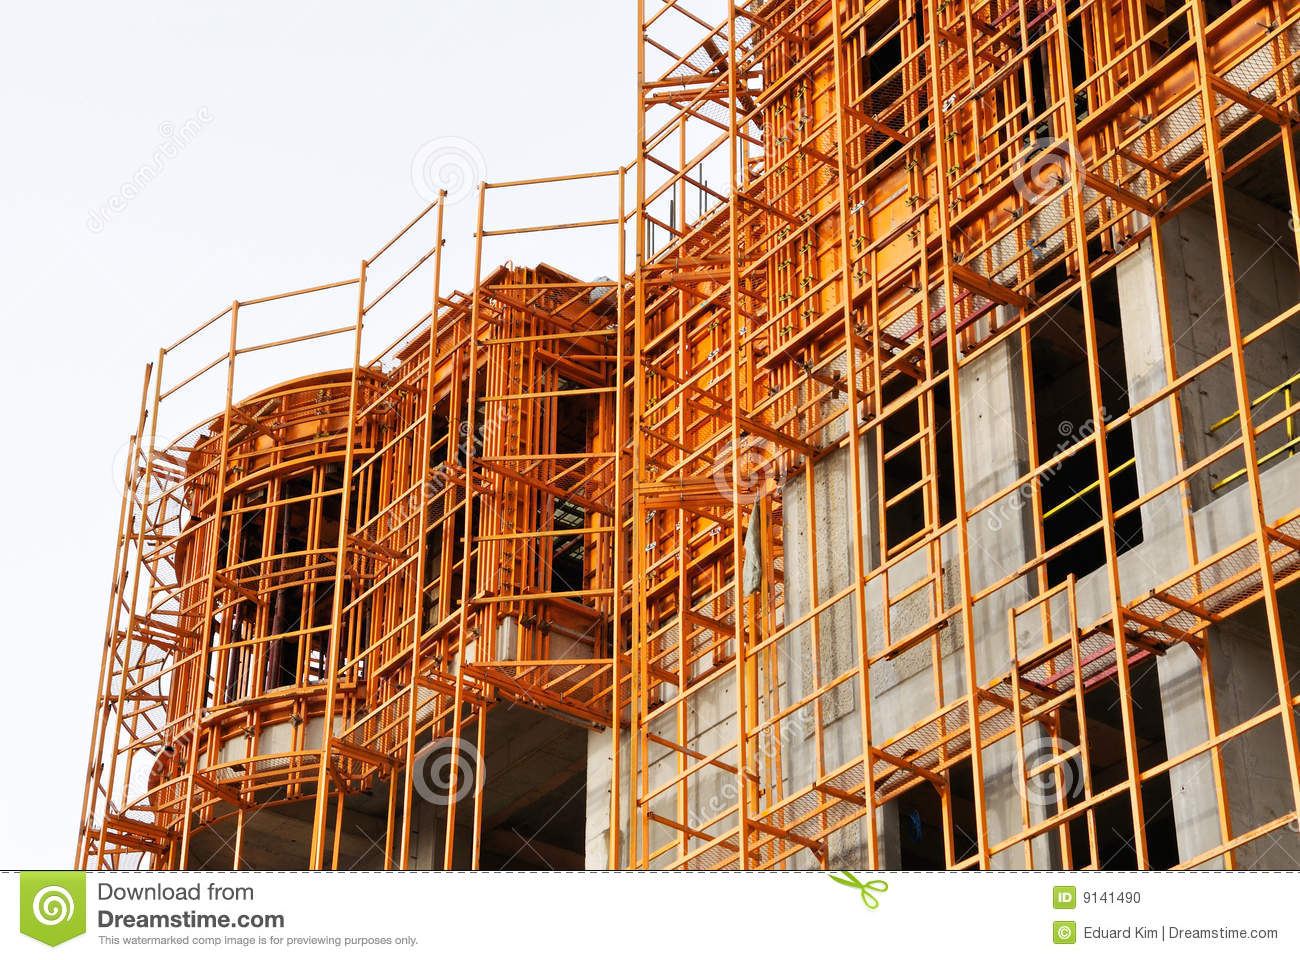 Building Under Construction Stock Photo - Image: 9141490